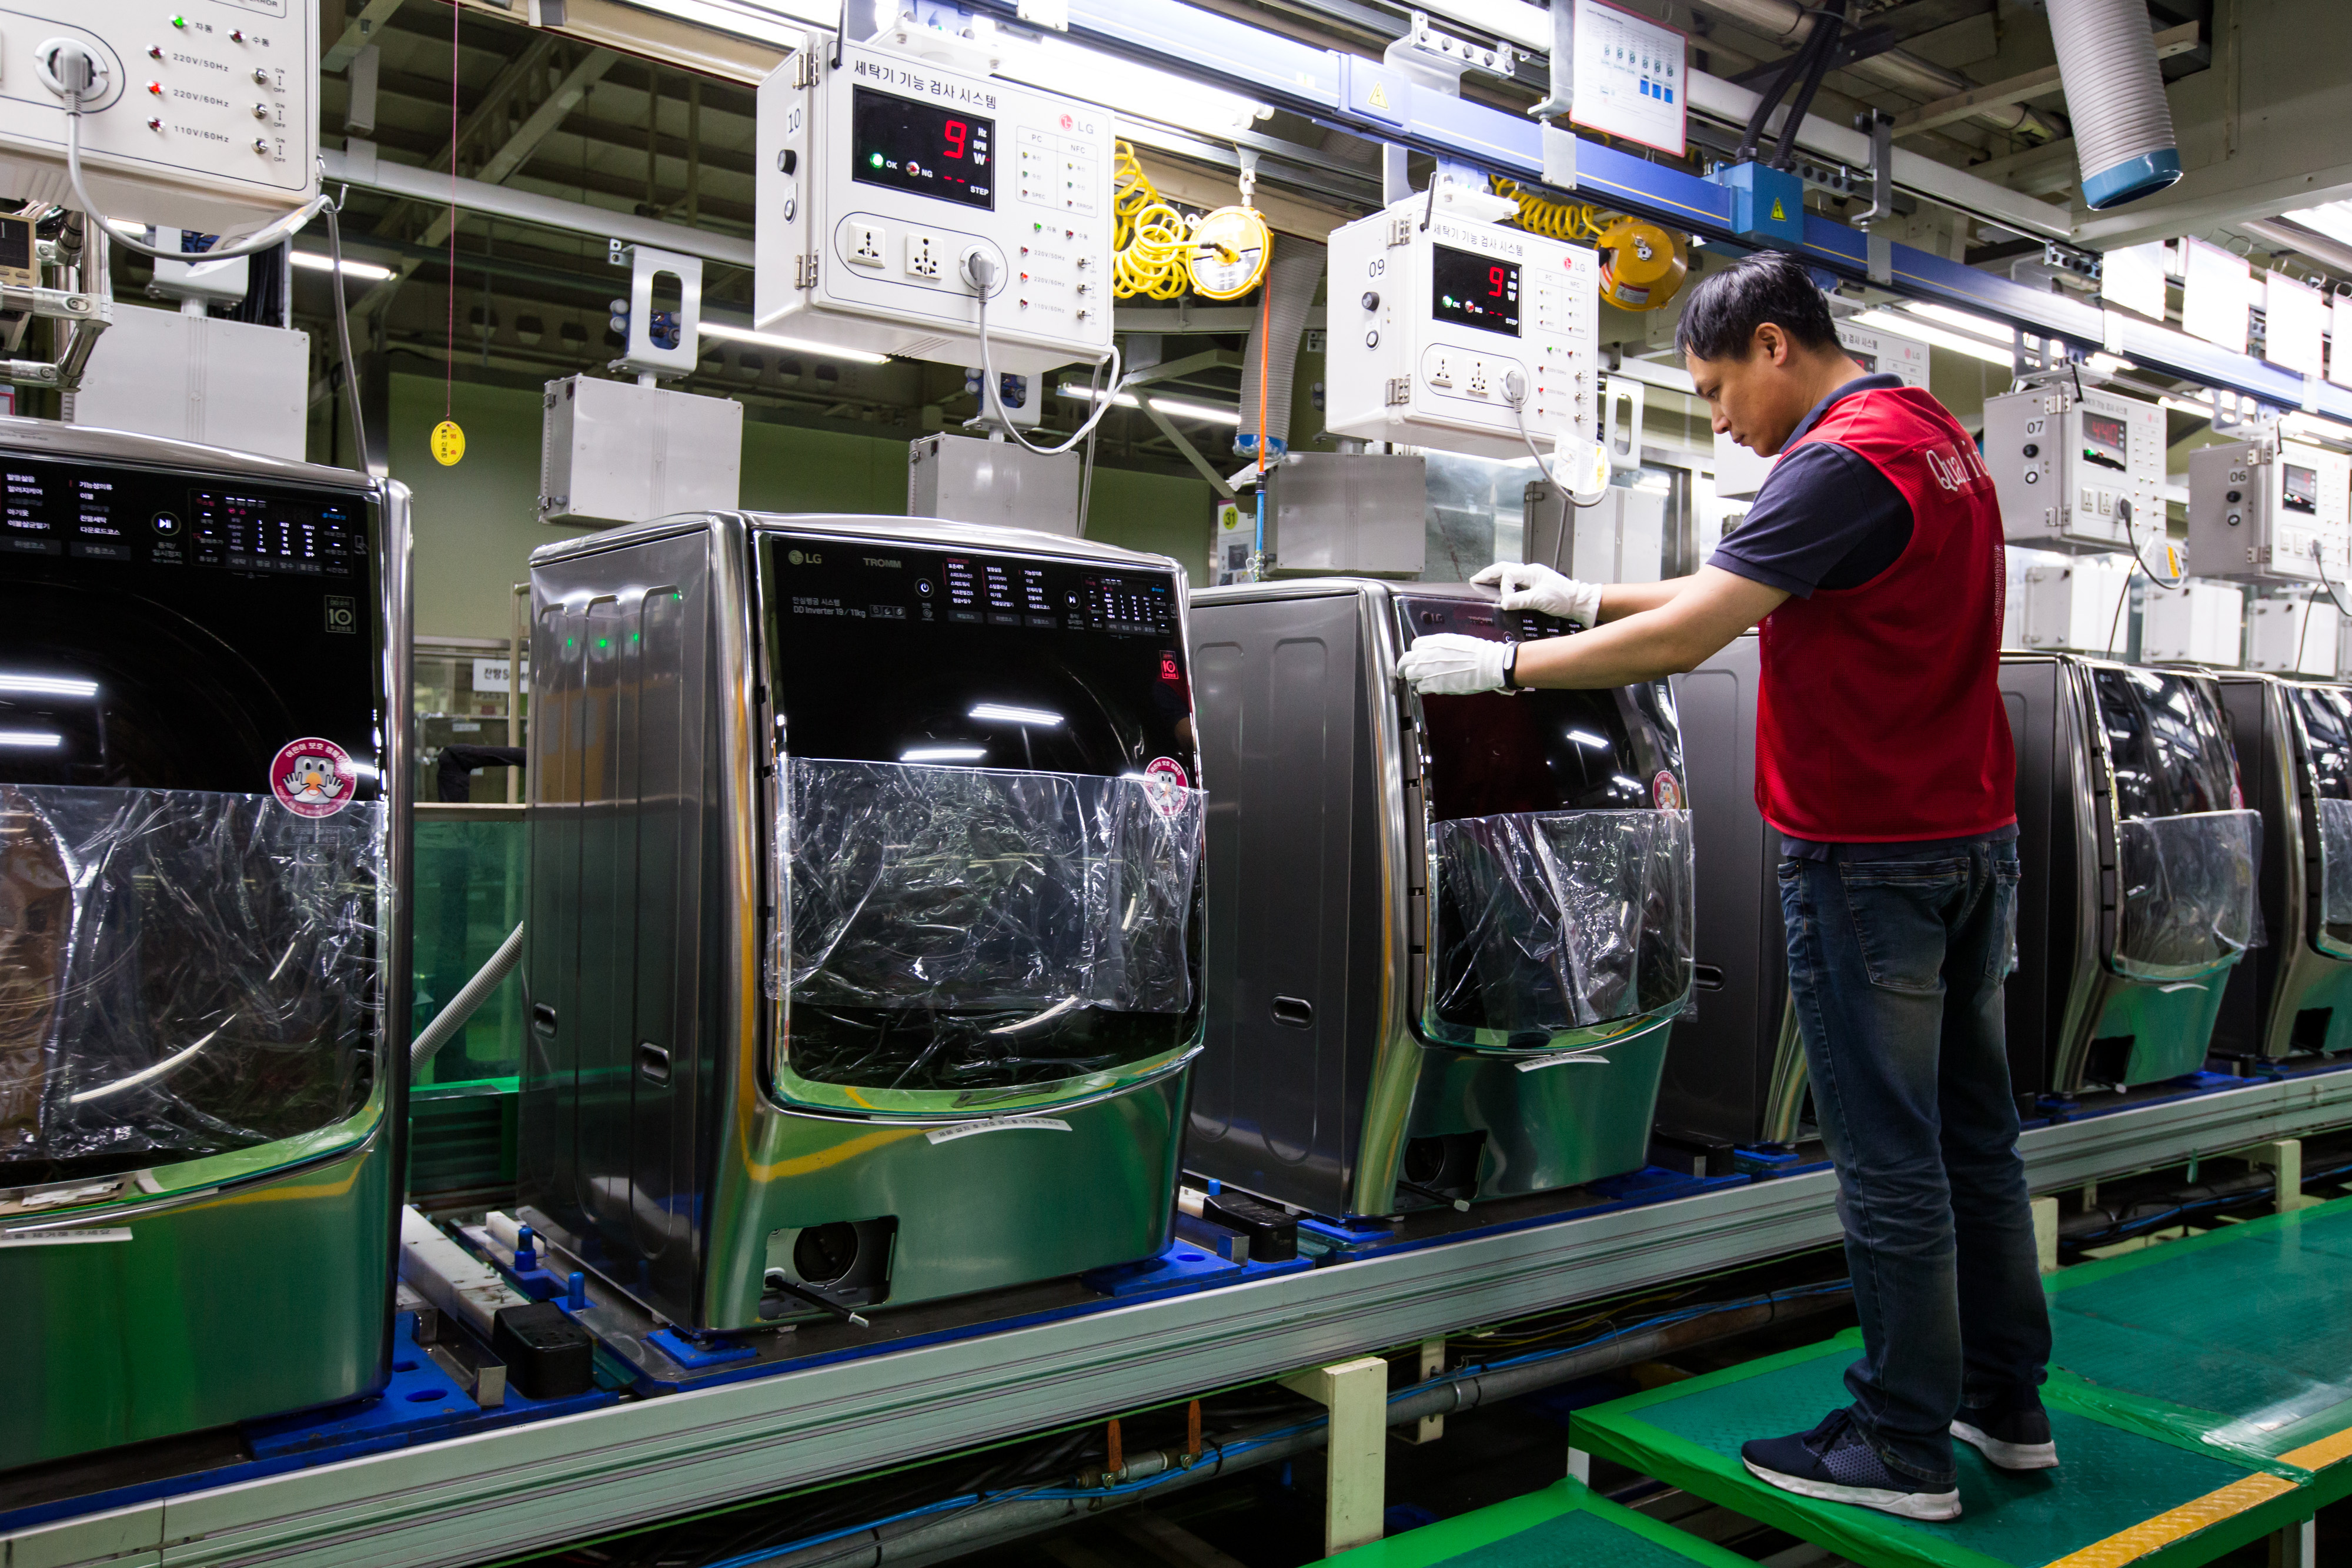 An employee attaches a sticker to an LG washing machine on production line at the company's factory in Changwon, South Korea.